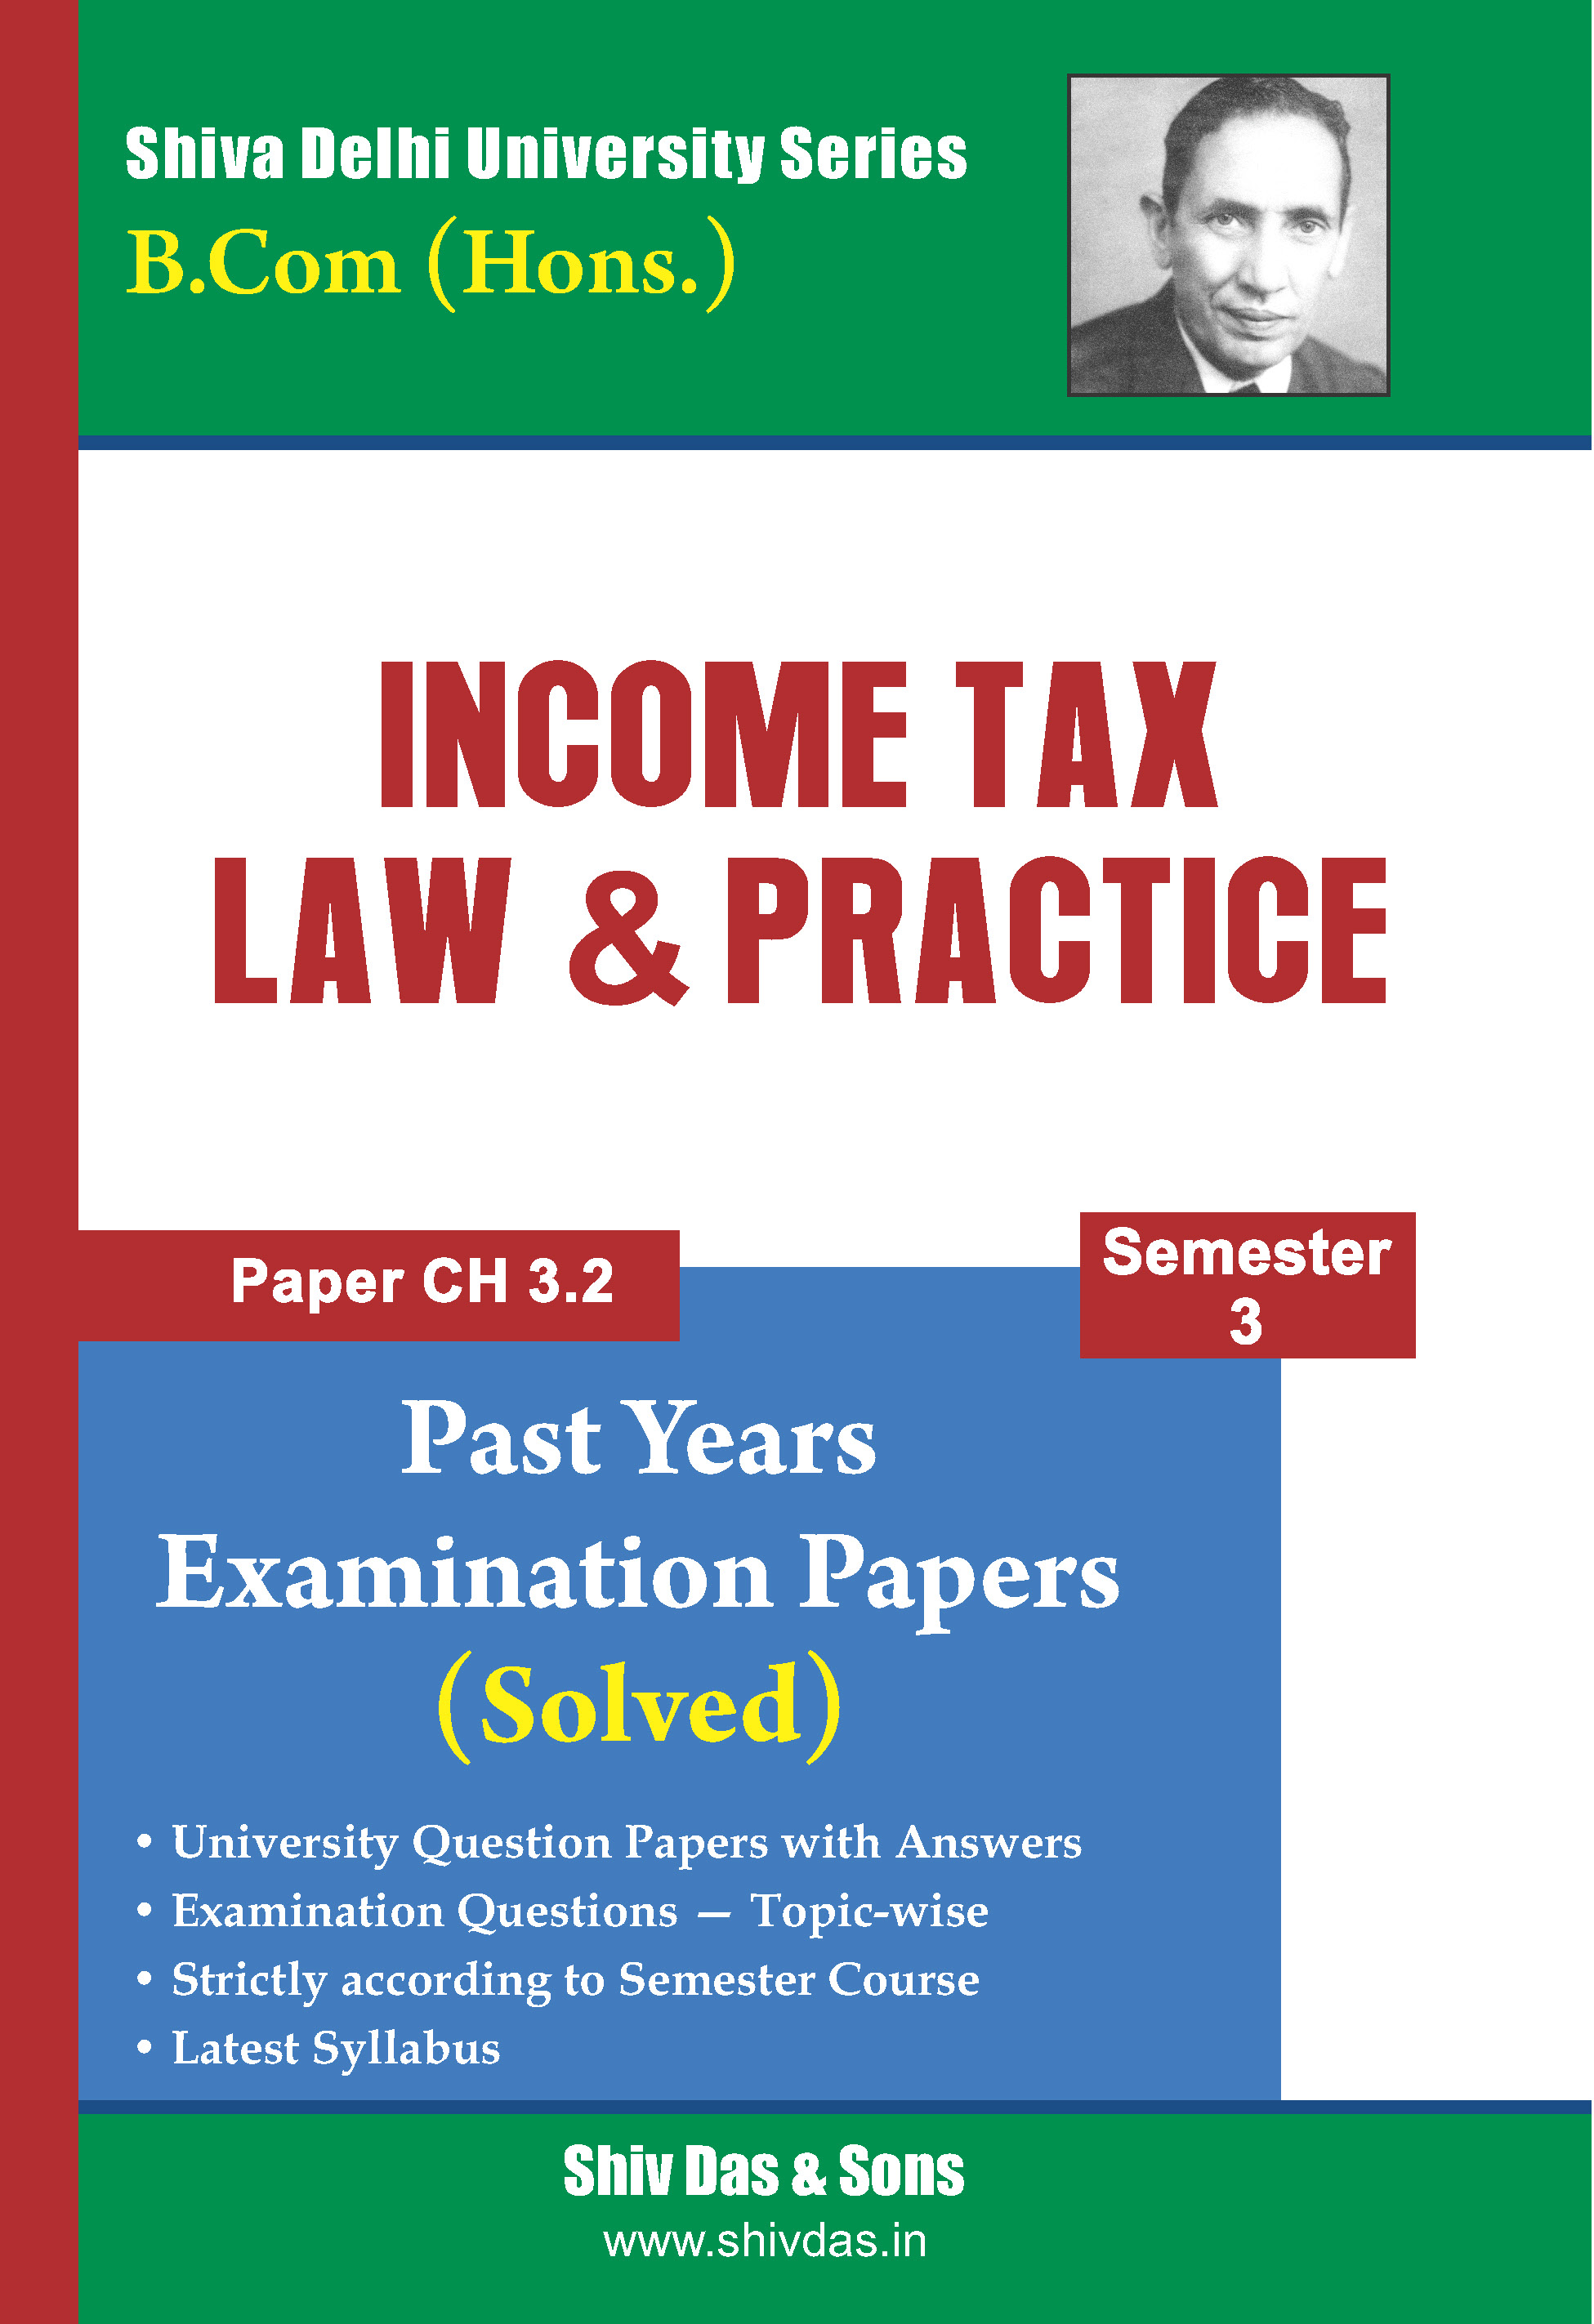 B.Com [Hons.] Semester-3 Income Tax Law & Practice